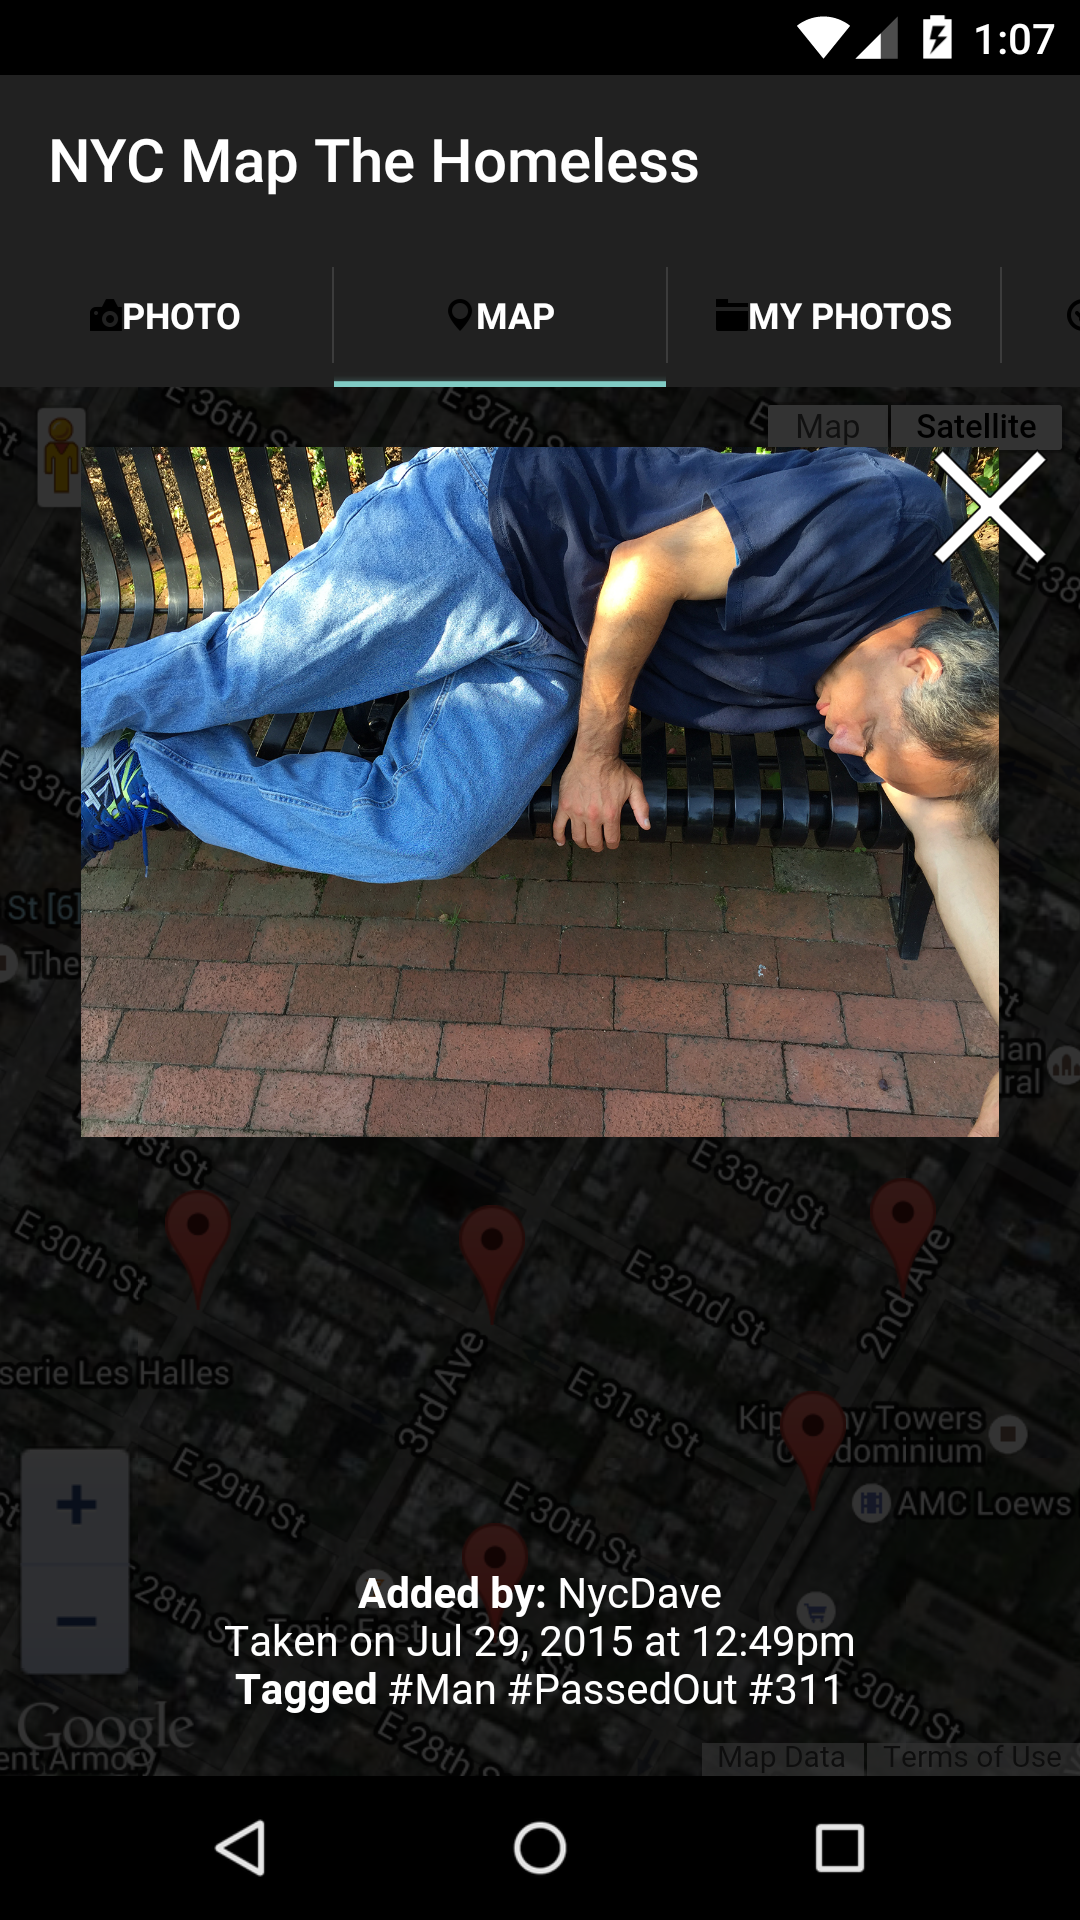 NYC Map The Homeless Amazoncouk Appstore For Android - Nyc map the homeless